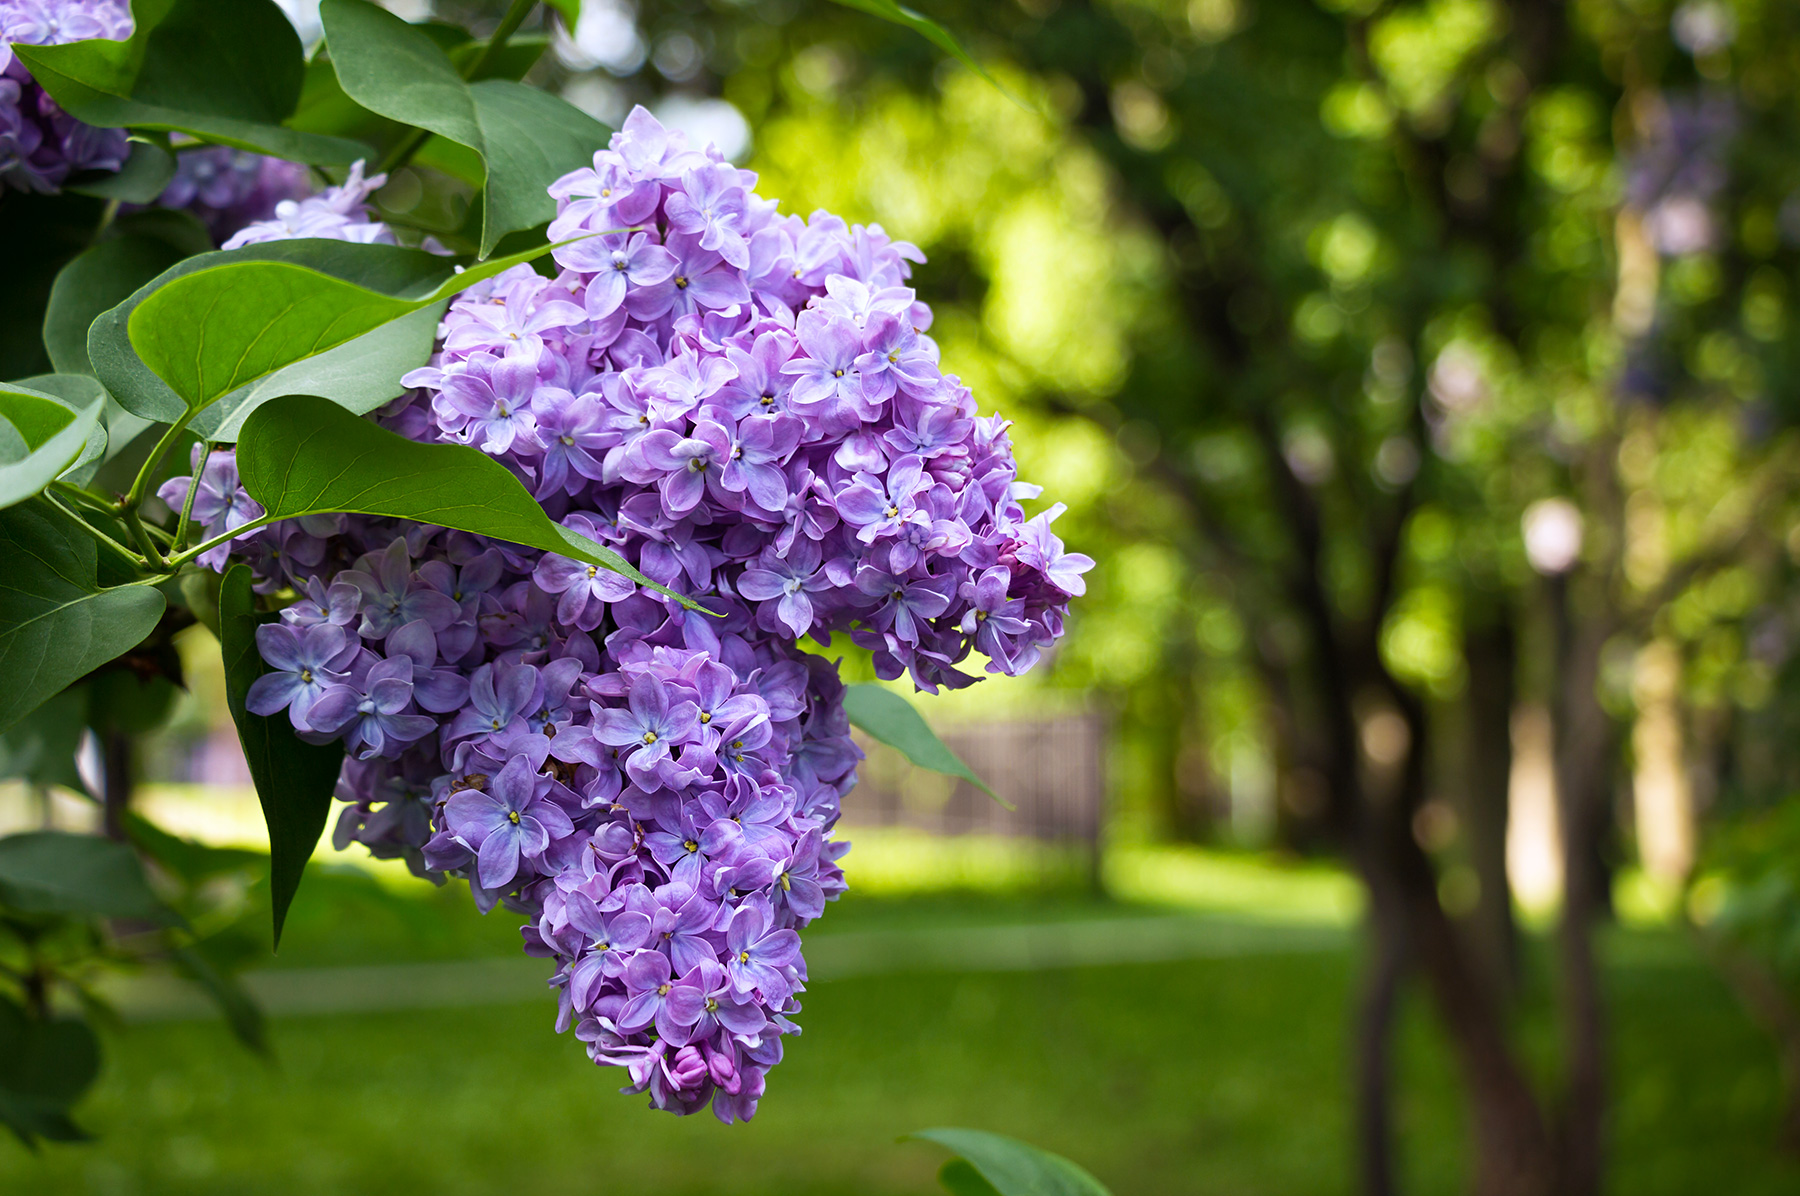 The Color Purple – What does it mean in the Landscape World